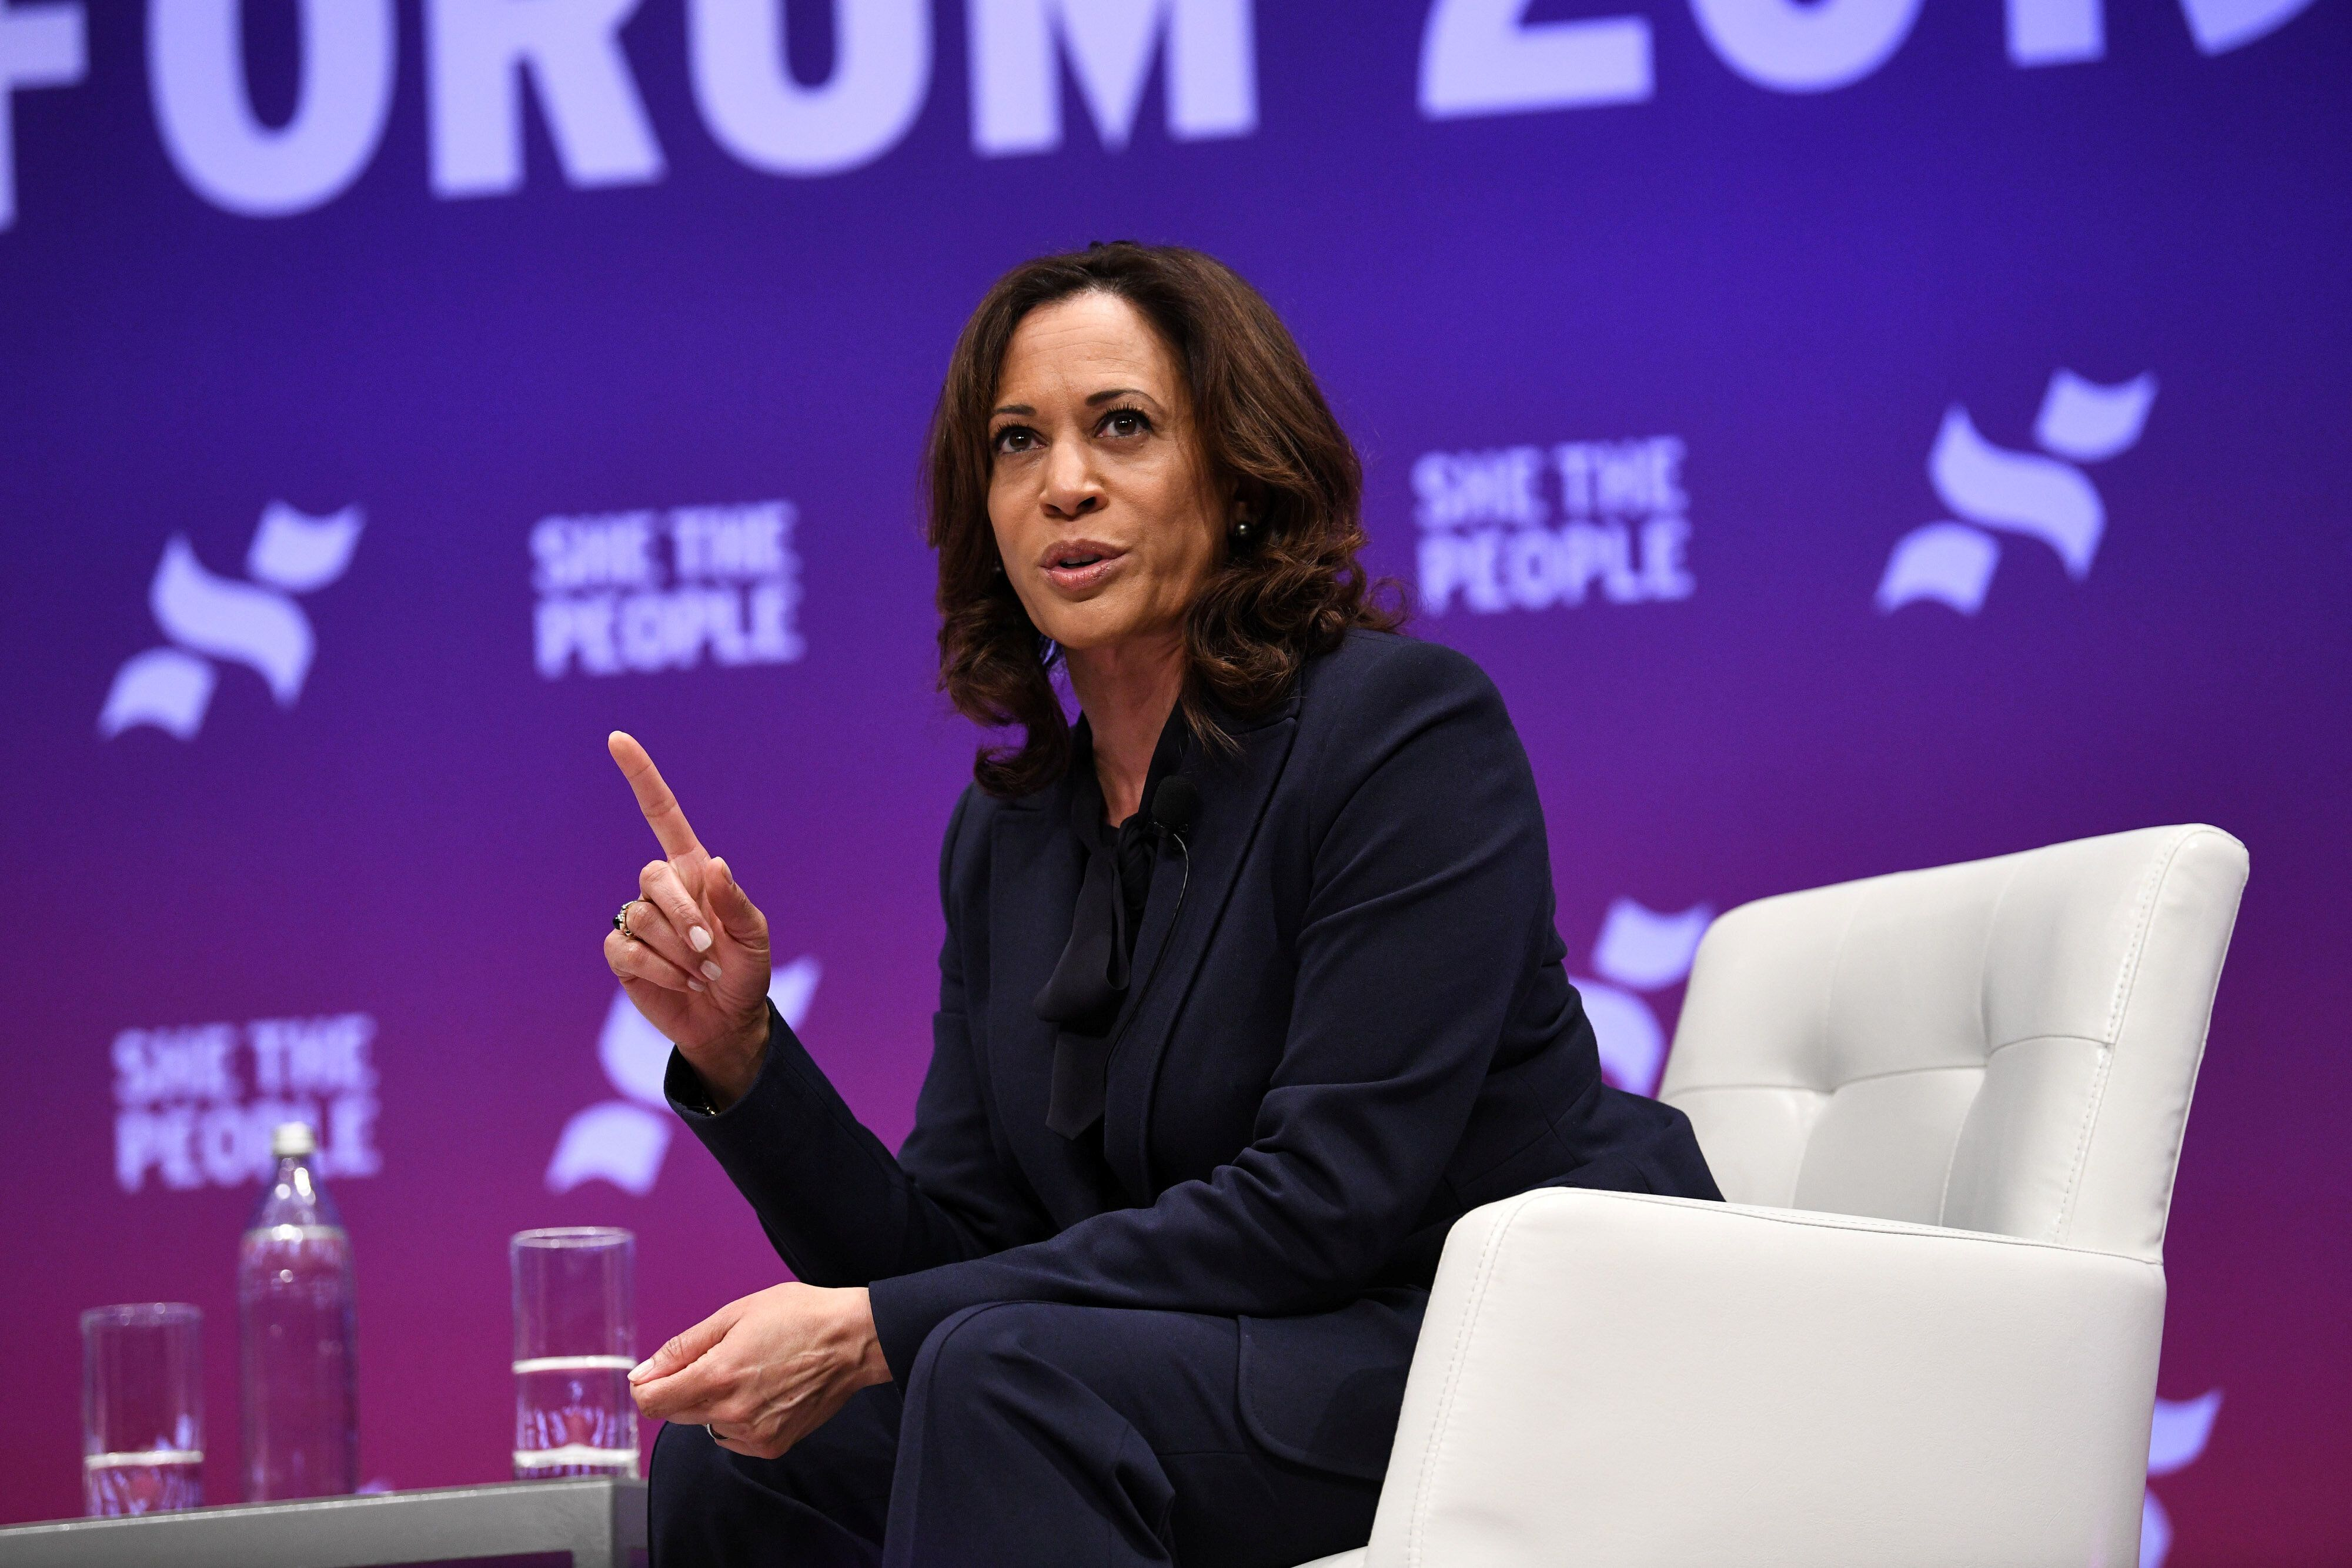 U.S. Democratic presidential candidate Kamala Harris participates in the She the People Presidential Forum in Houston, Texas, U.S. April 24, 2019.  REUTERS/Loren Elliott